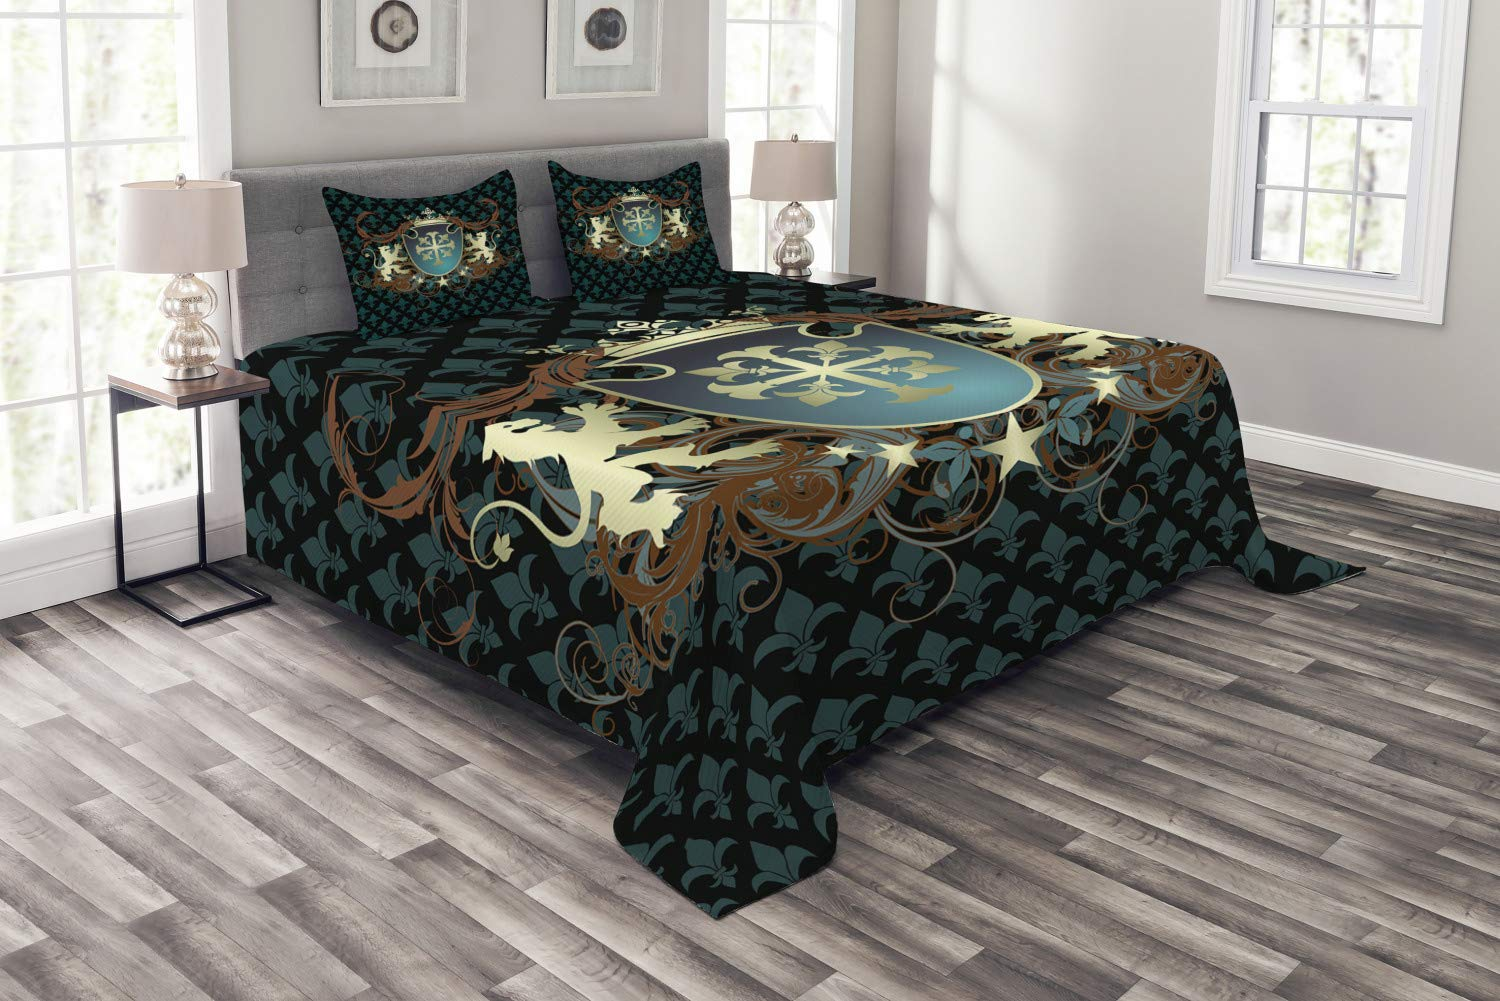 Ambesonne Medieval Bedspread, Heraldic Design from Middle Ages Coat of Arms Crown Lions and Swirls, Decorative Quilted 3 Piece Coverlet Set with 2 Pillow Shams, King Size, Teal Cinnamon